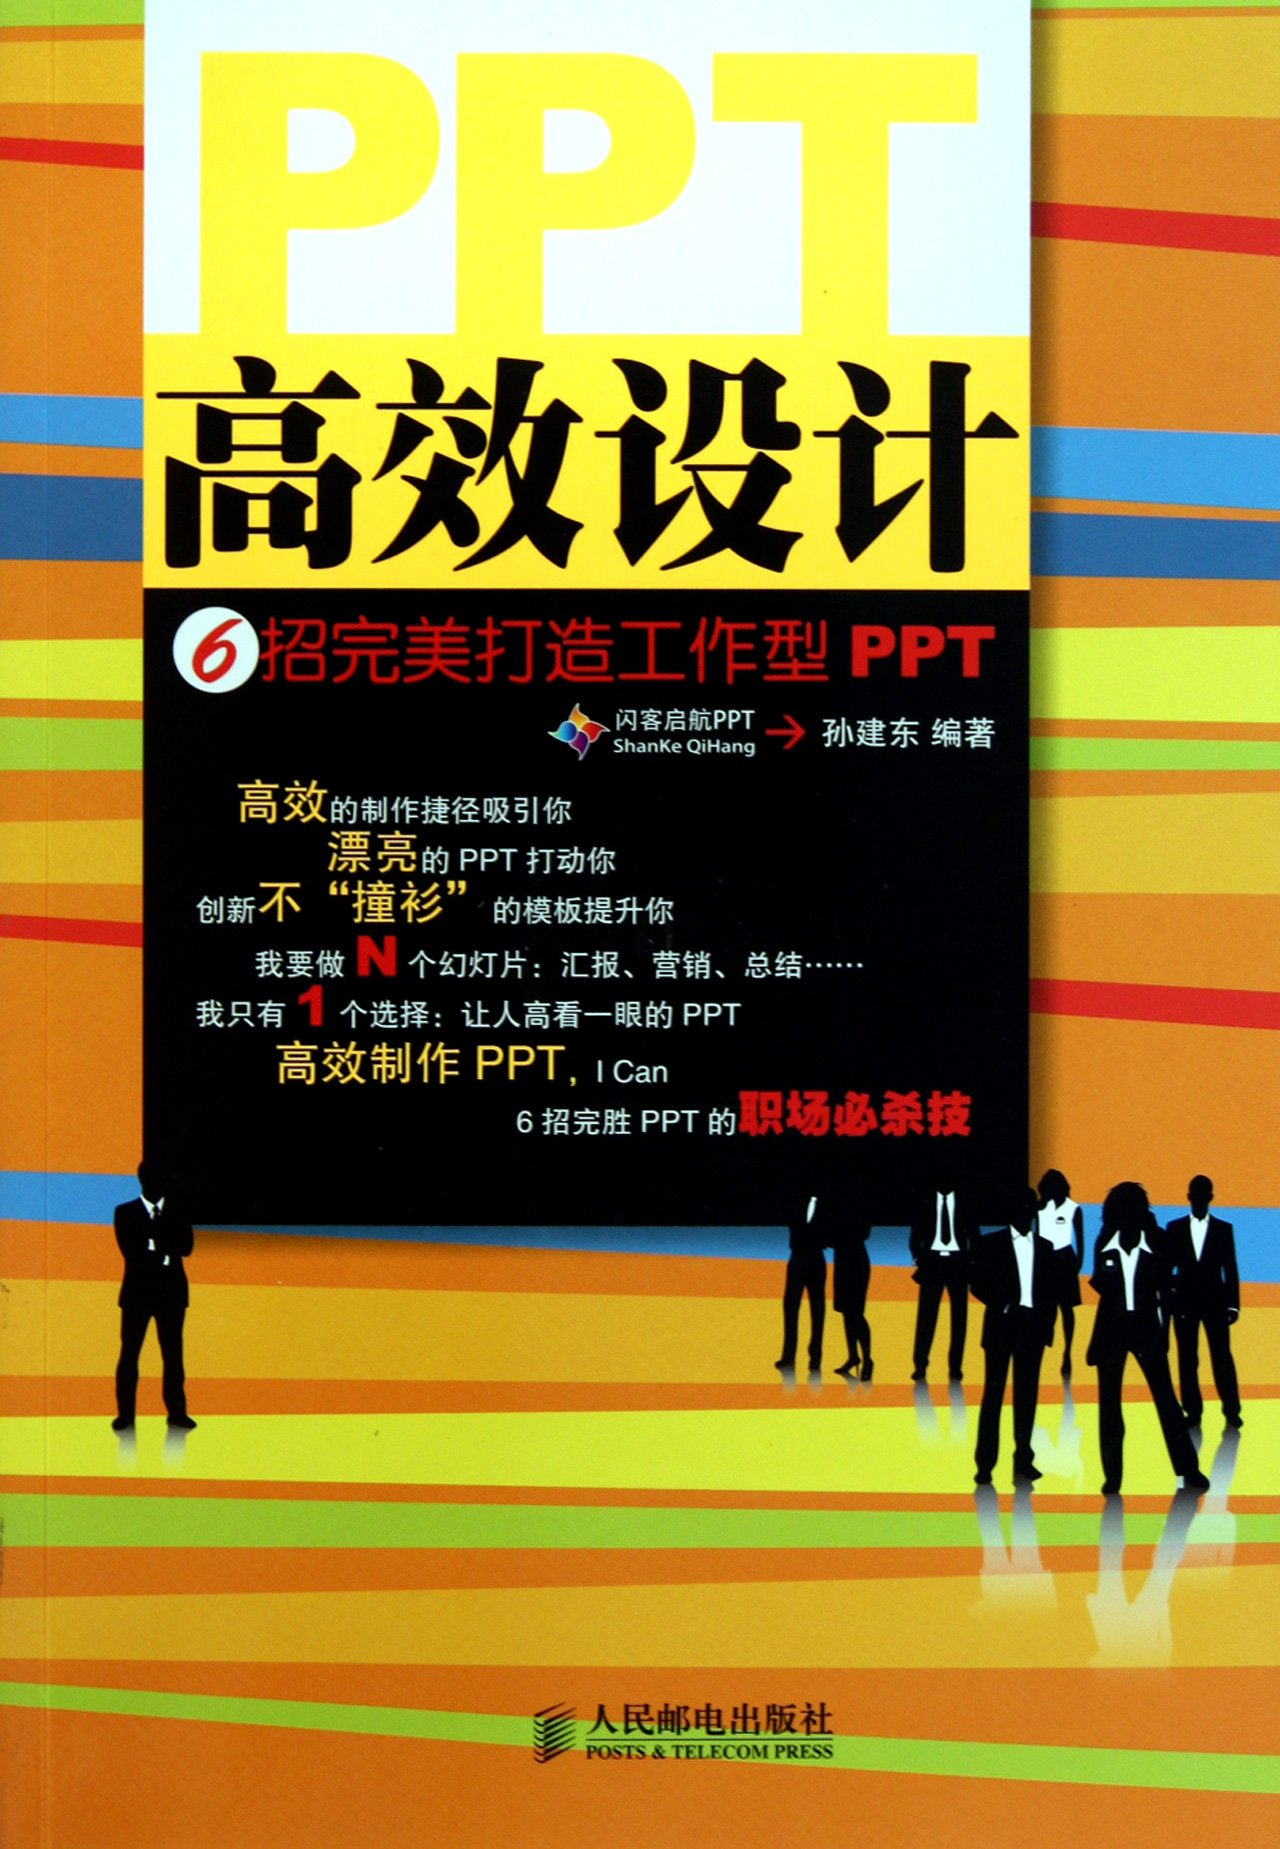 Read Online Effective PPT Design: Build up Perfect Working PPT by 6 Skills (Chinese Edition) PDF